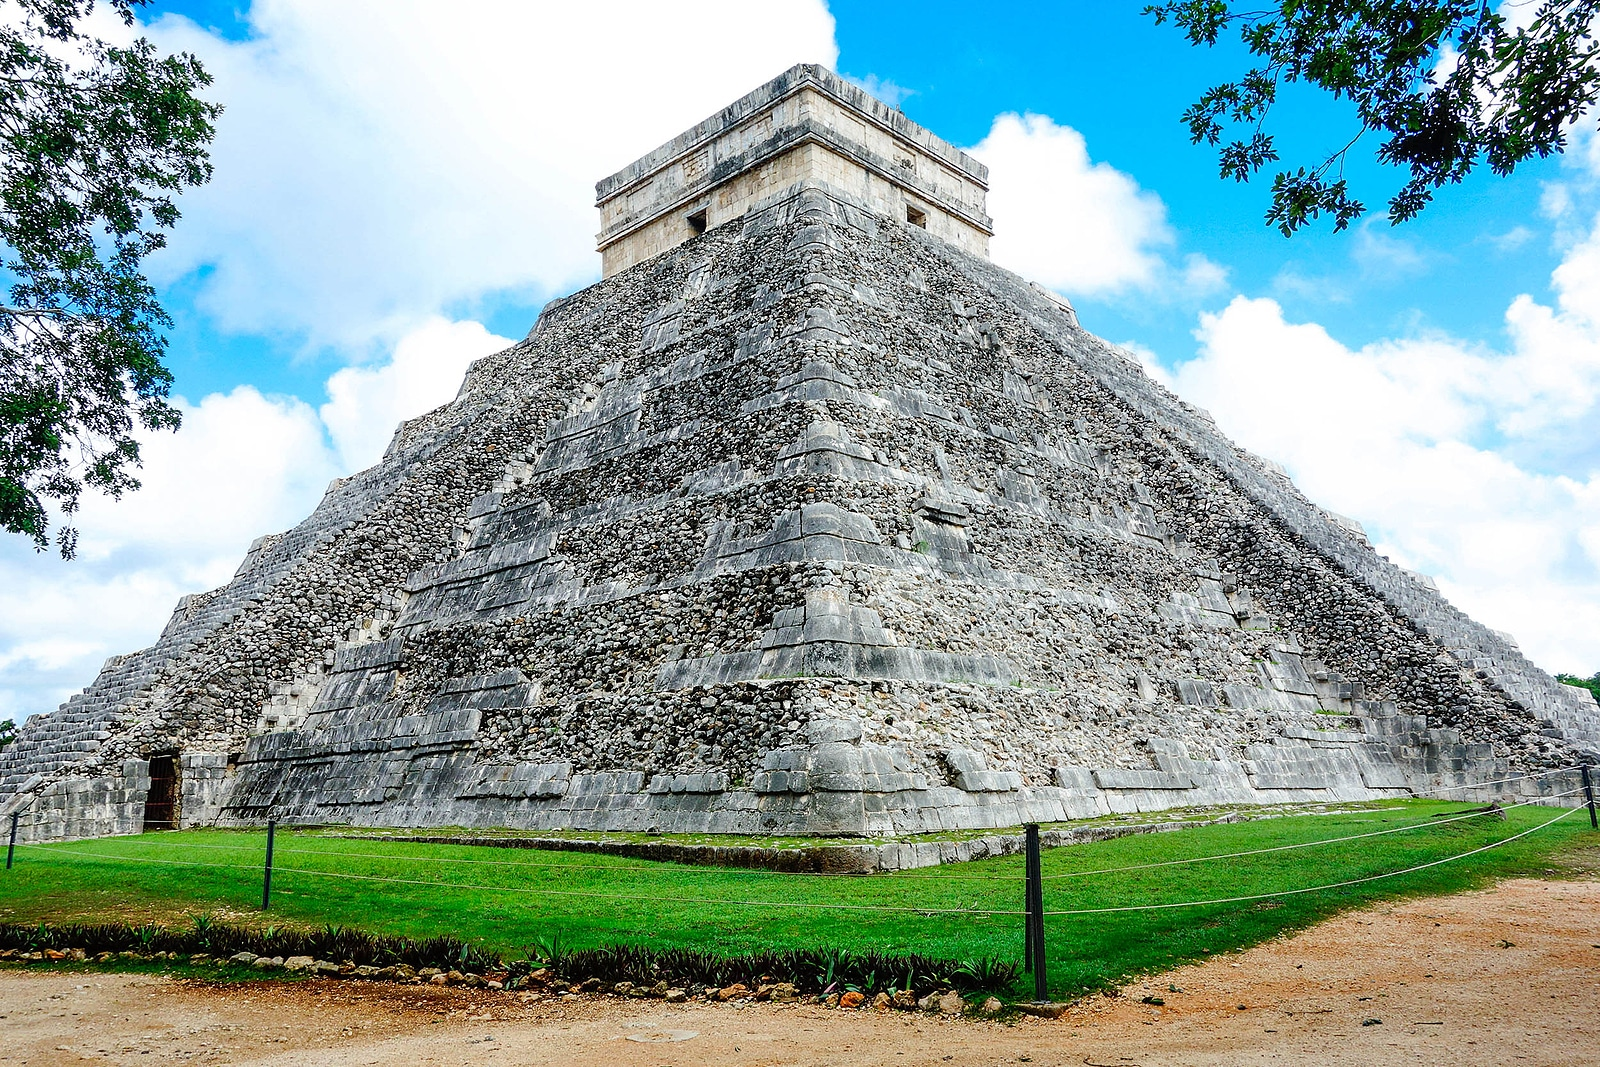 Mayan Temple of Kukulkan (El Castillo), by Booking Express Travel